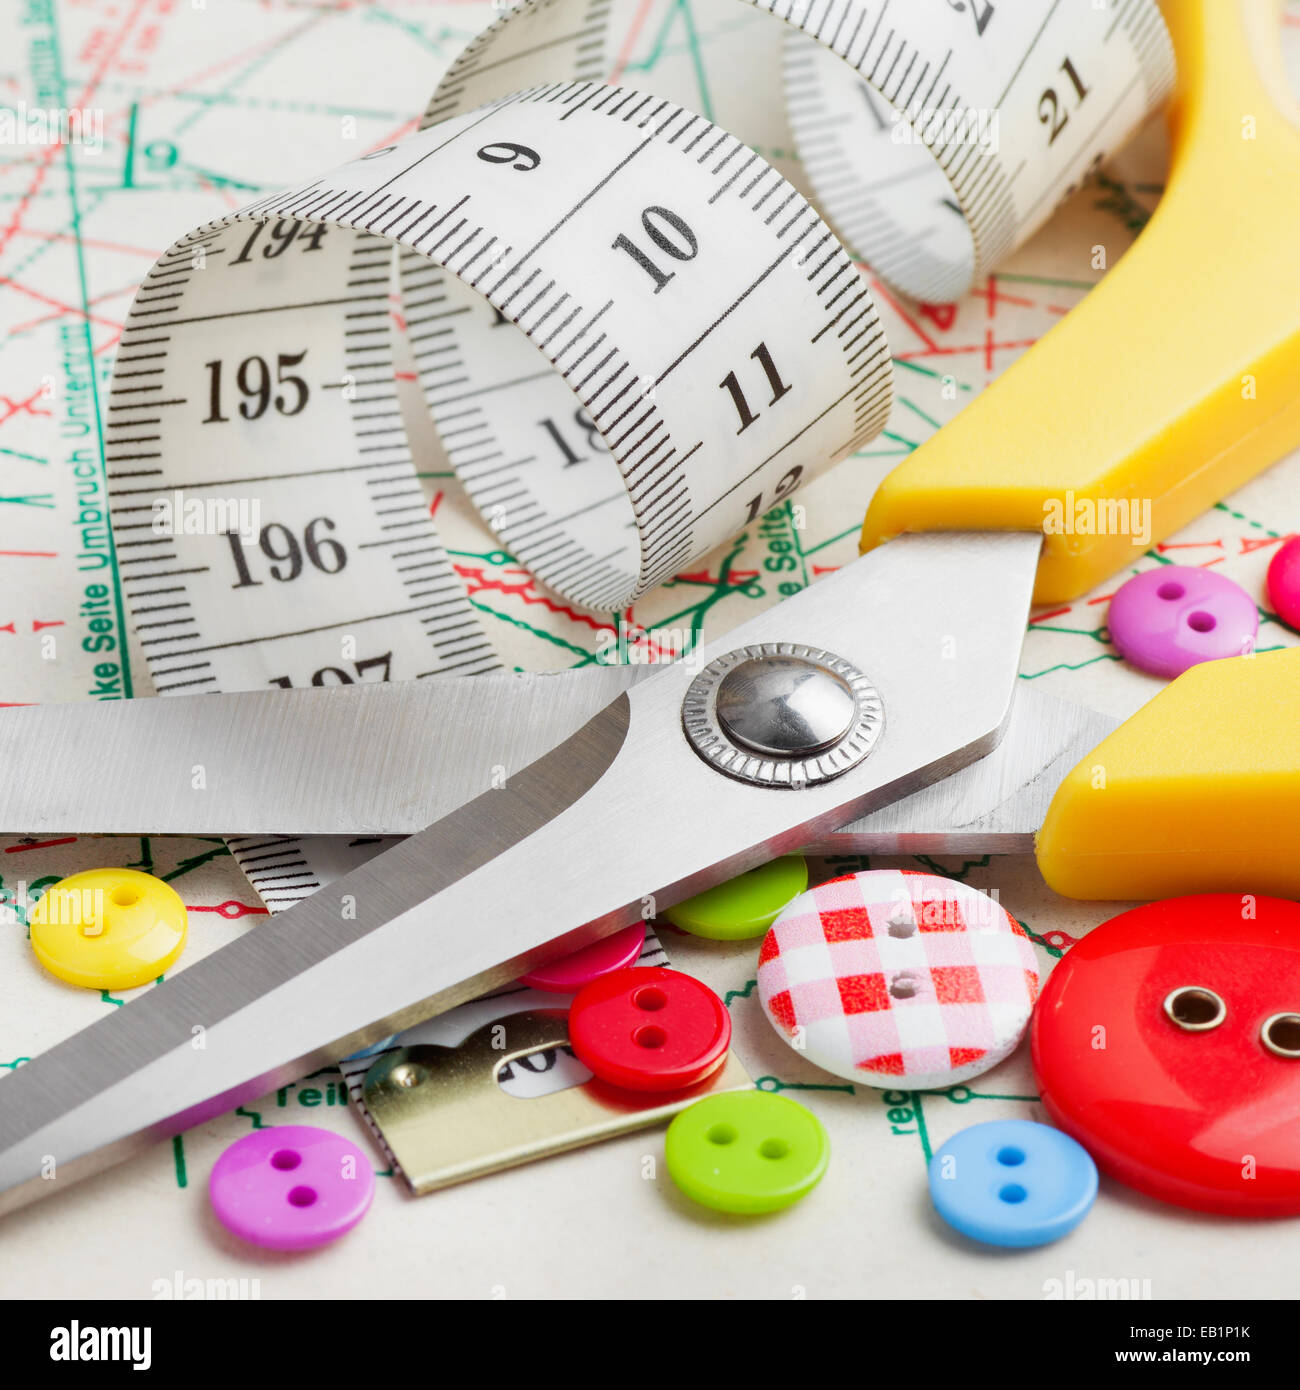 Sewing items: buttons, scissors, measuring tape  on sewing pattern - Stock Image